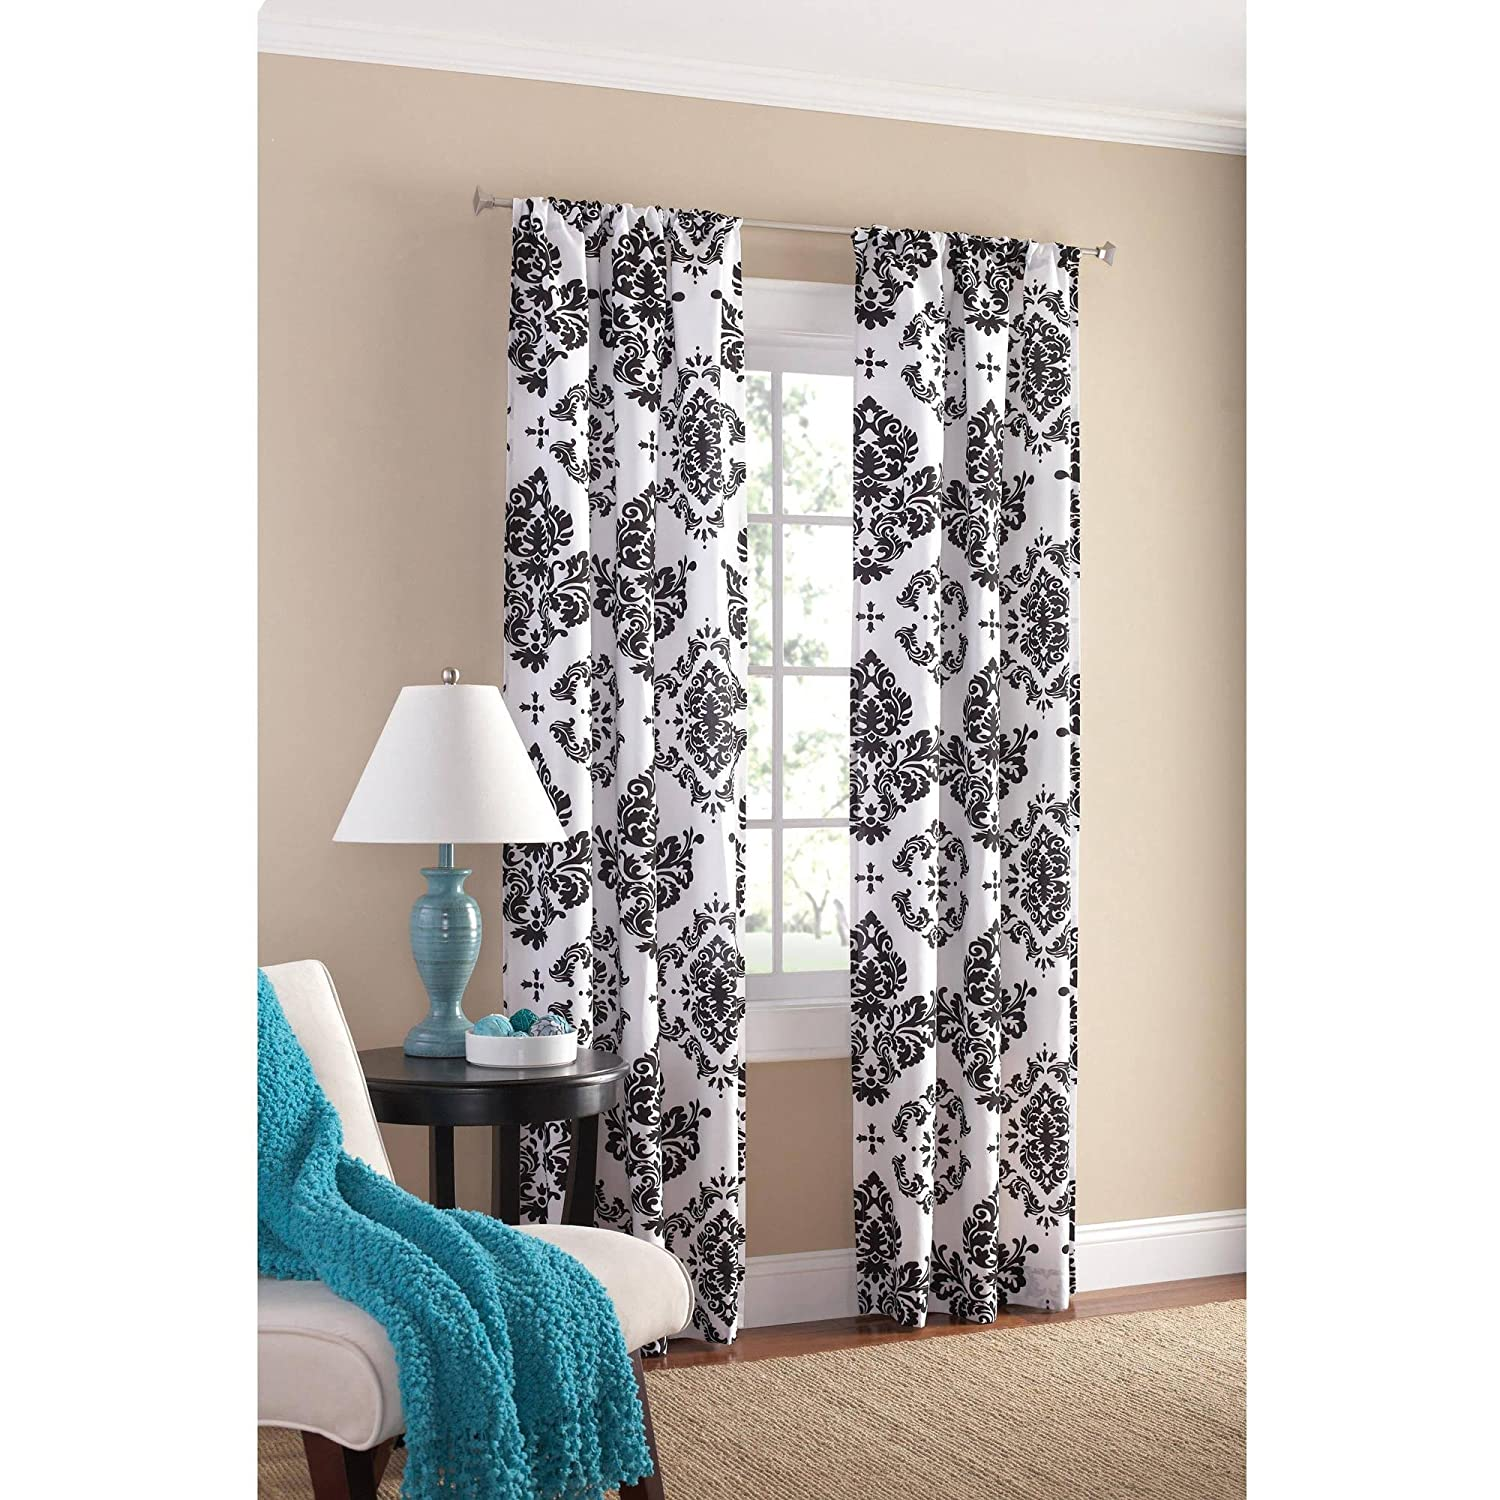 Amazon Black and White Damask Curtain Panel Set of 2 40x84